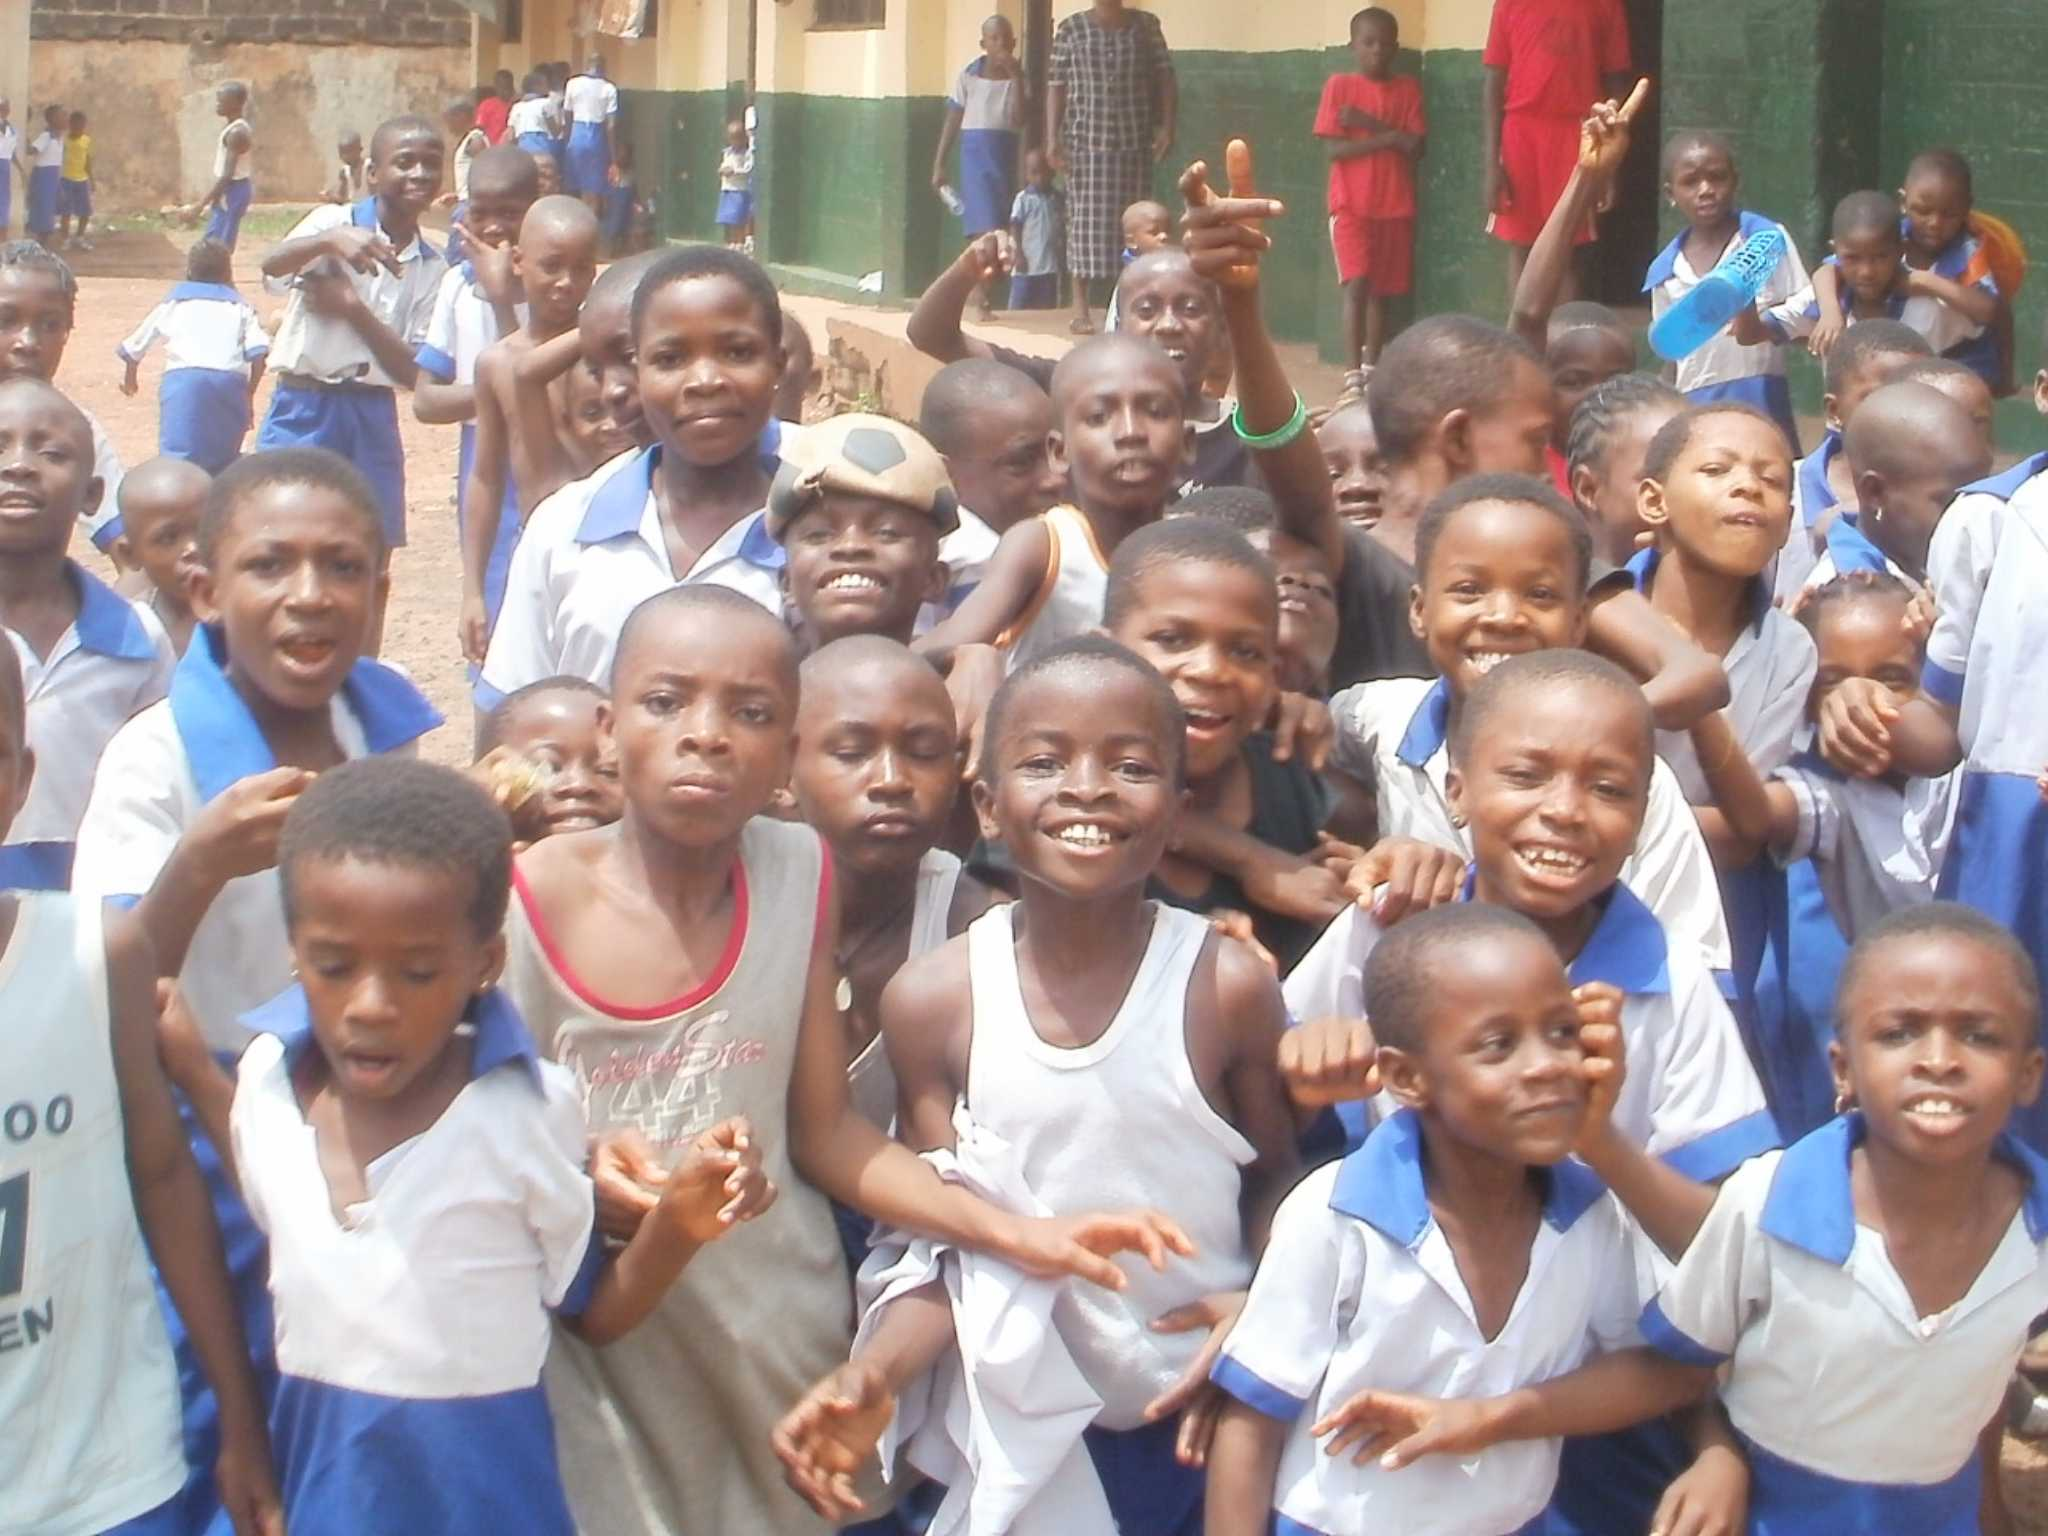 Children in Nigeria being helped by Catholic World Mission donors